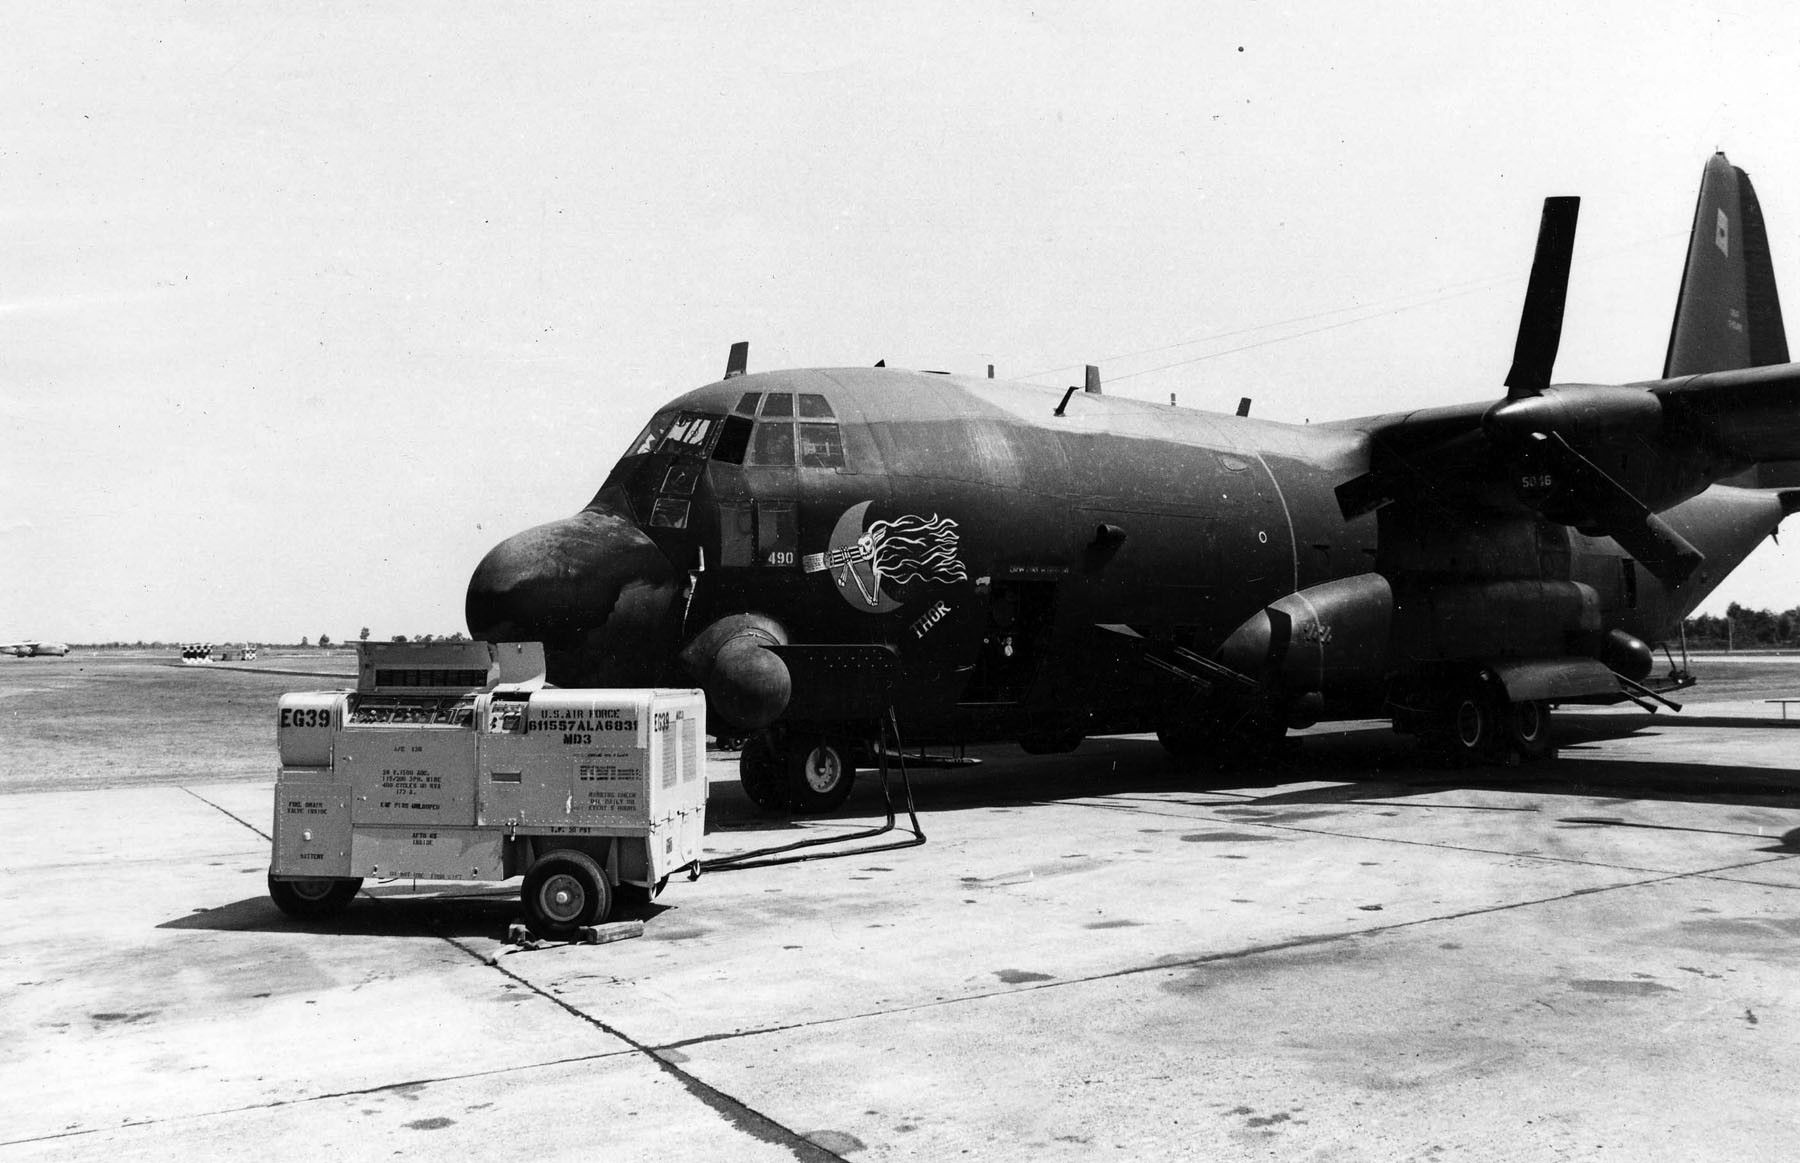 U.S. CARGO PLANES | 1950's US Air Force cargo plane, displayed at Air  Museum, Hill AF Base ... | U.S.A.A.F. & U.S.A.F. CARGO PLANES | Pinterest |  Planes, ...